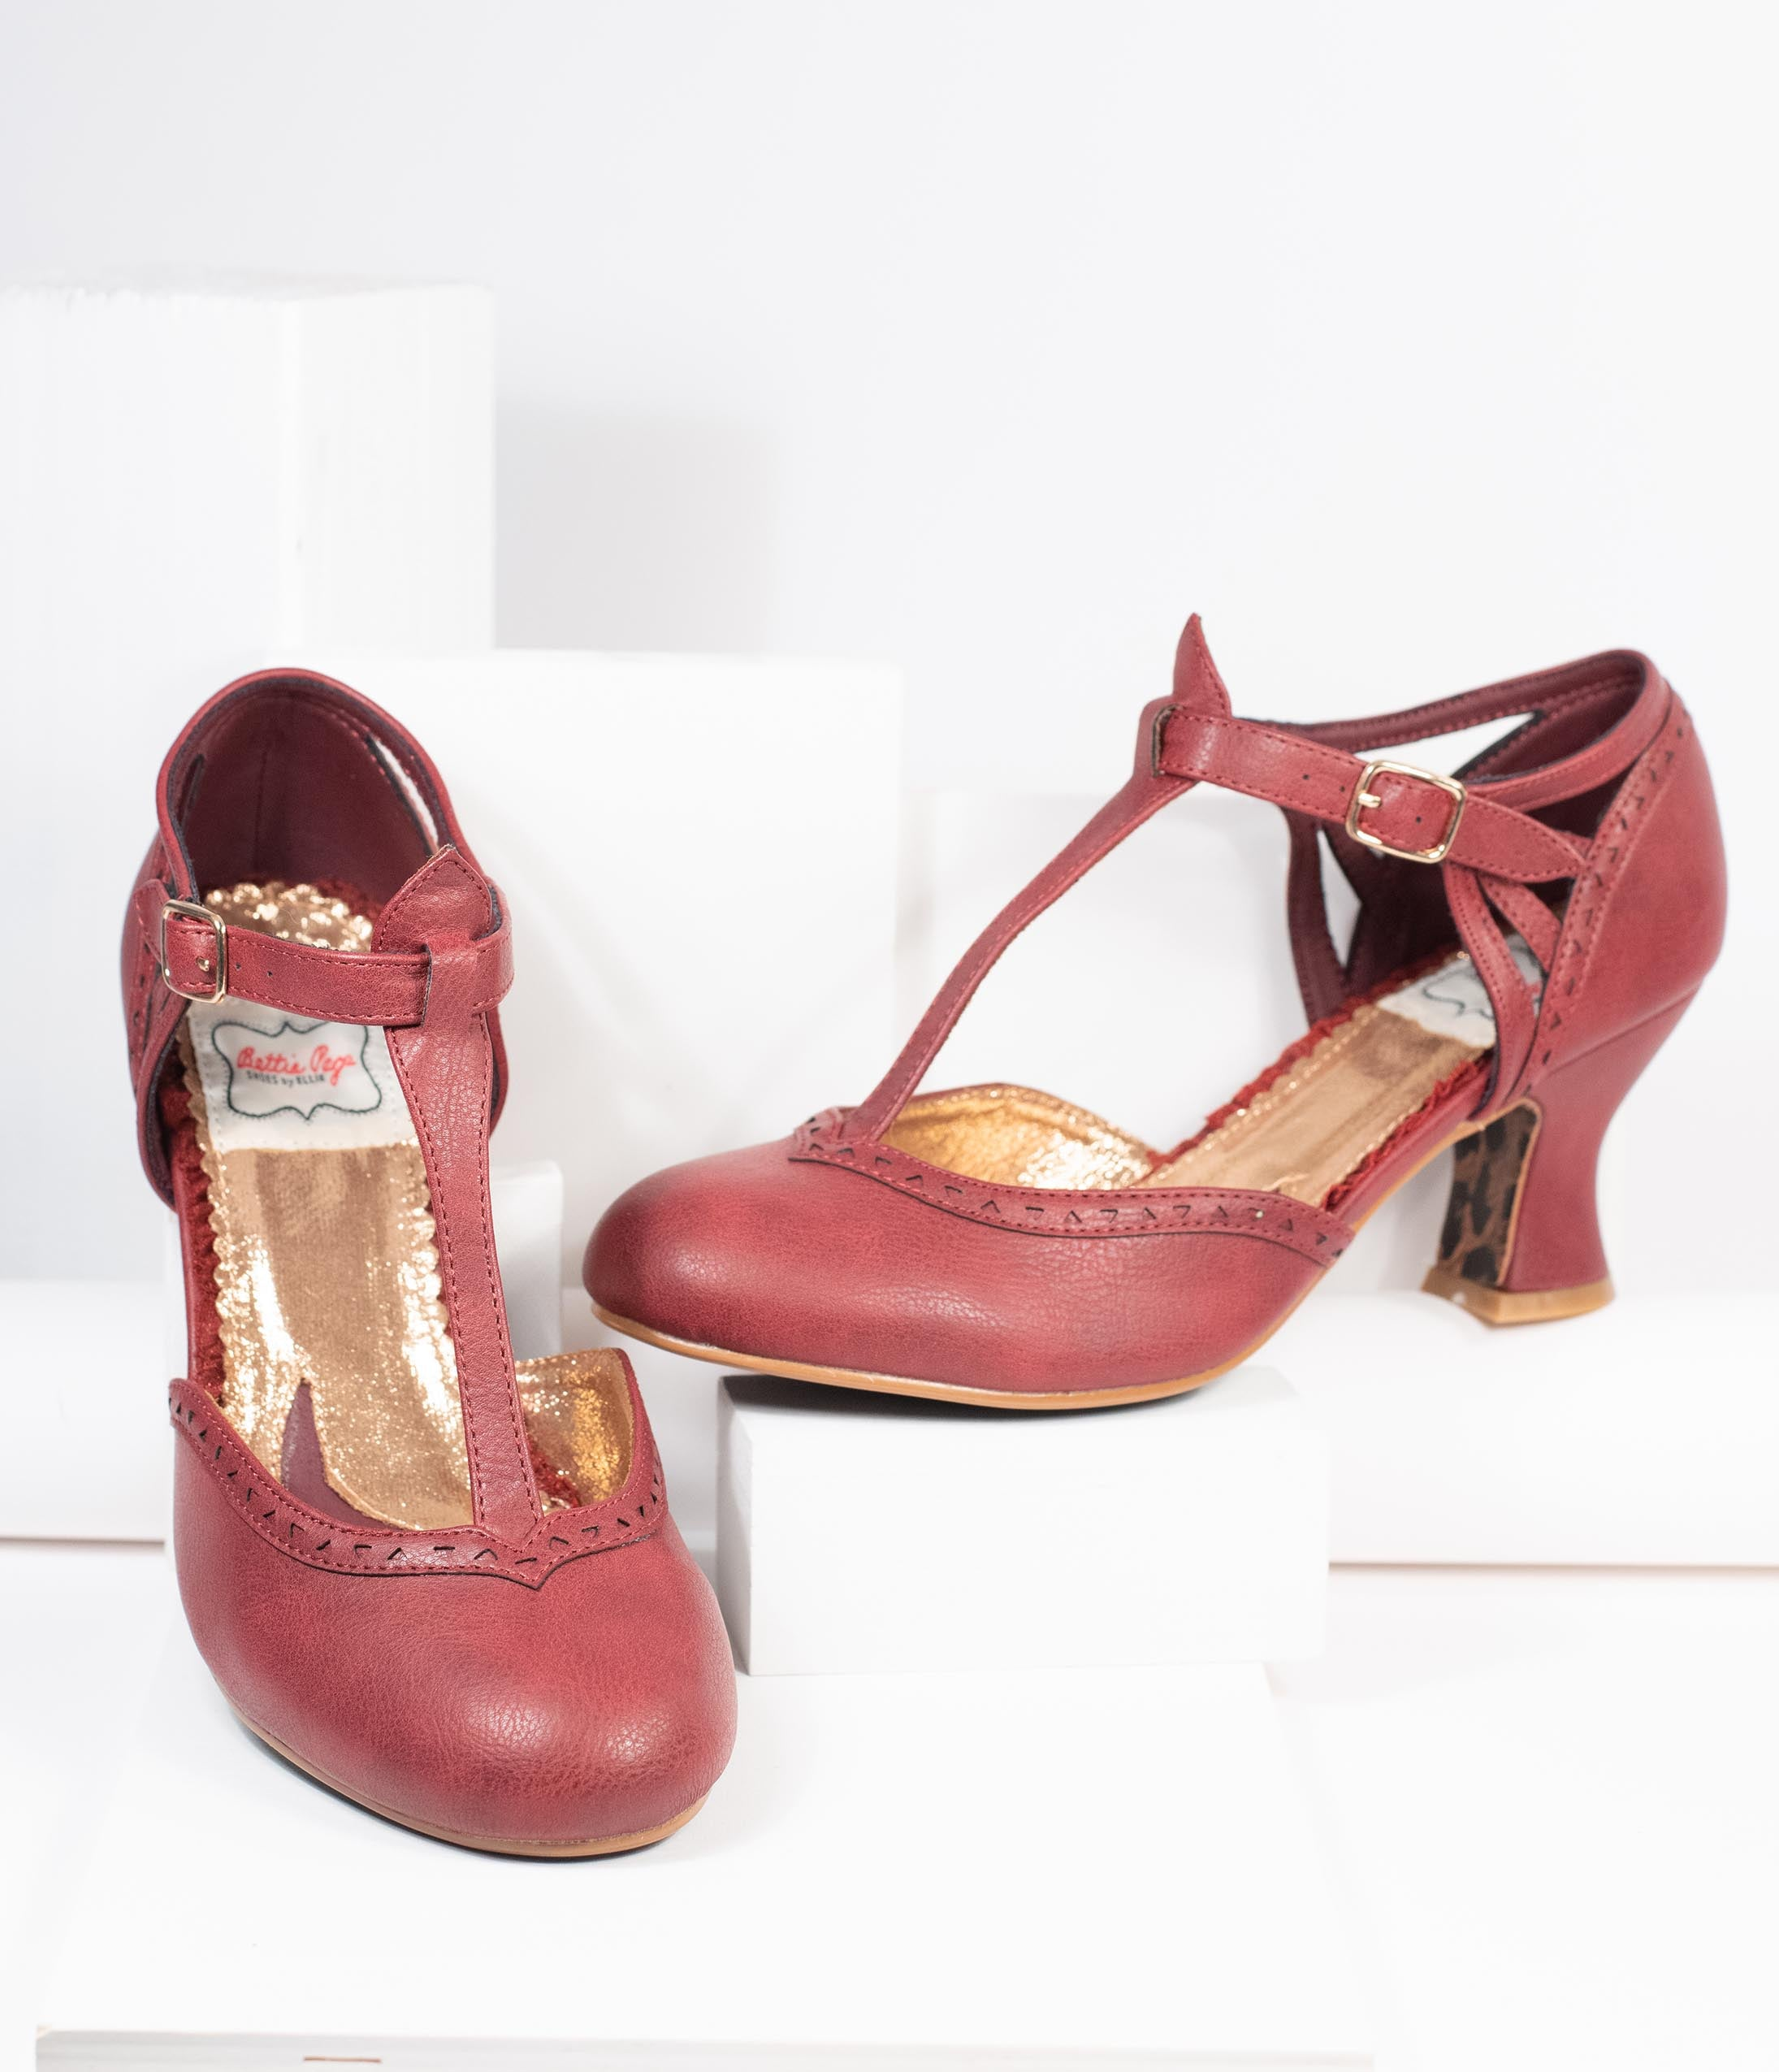 Vintage Heels, Retro Heels, Pumps, Shoes Bettie Page Burgundy Leatherette Marie T-Strap Heels $88.00 AT vintagedancer.com